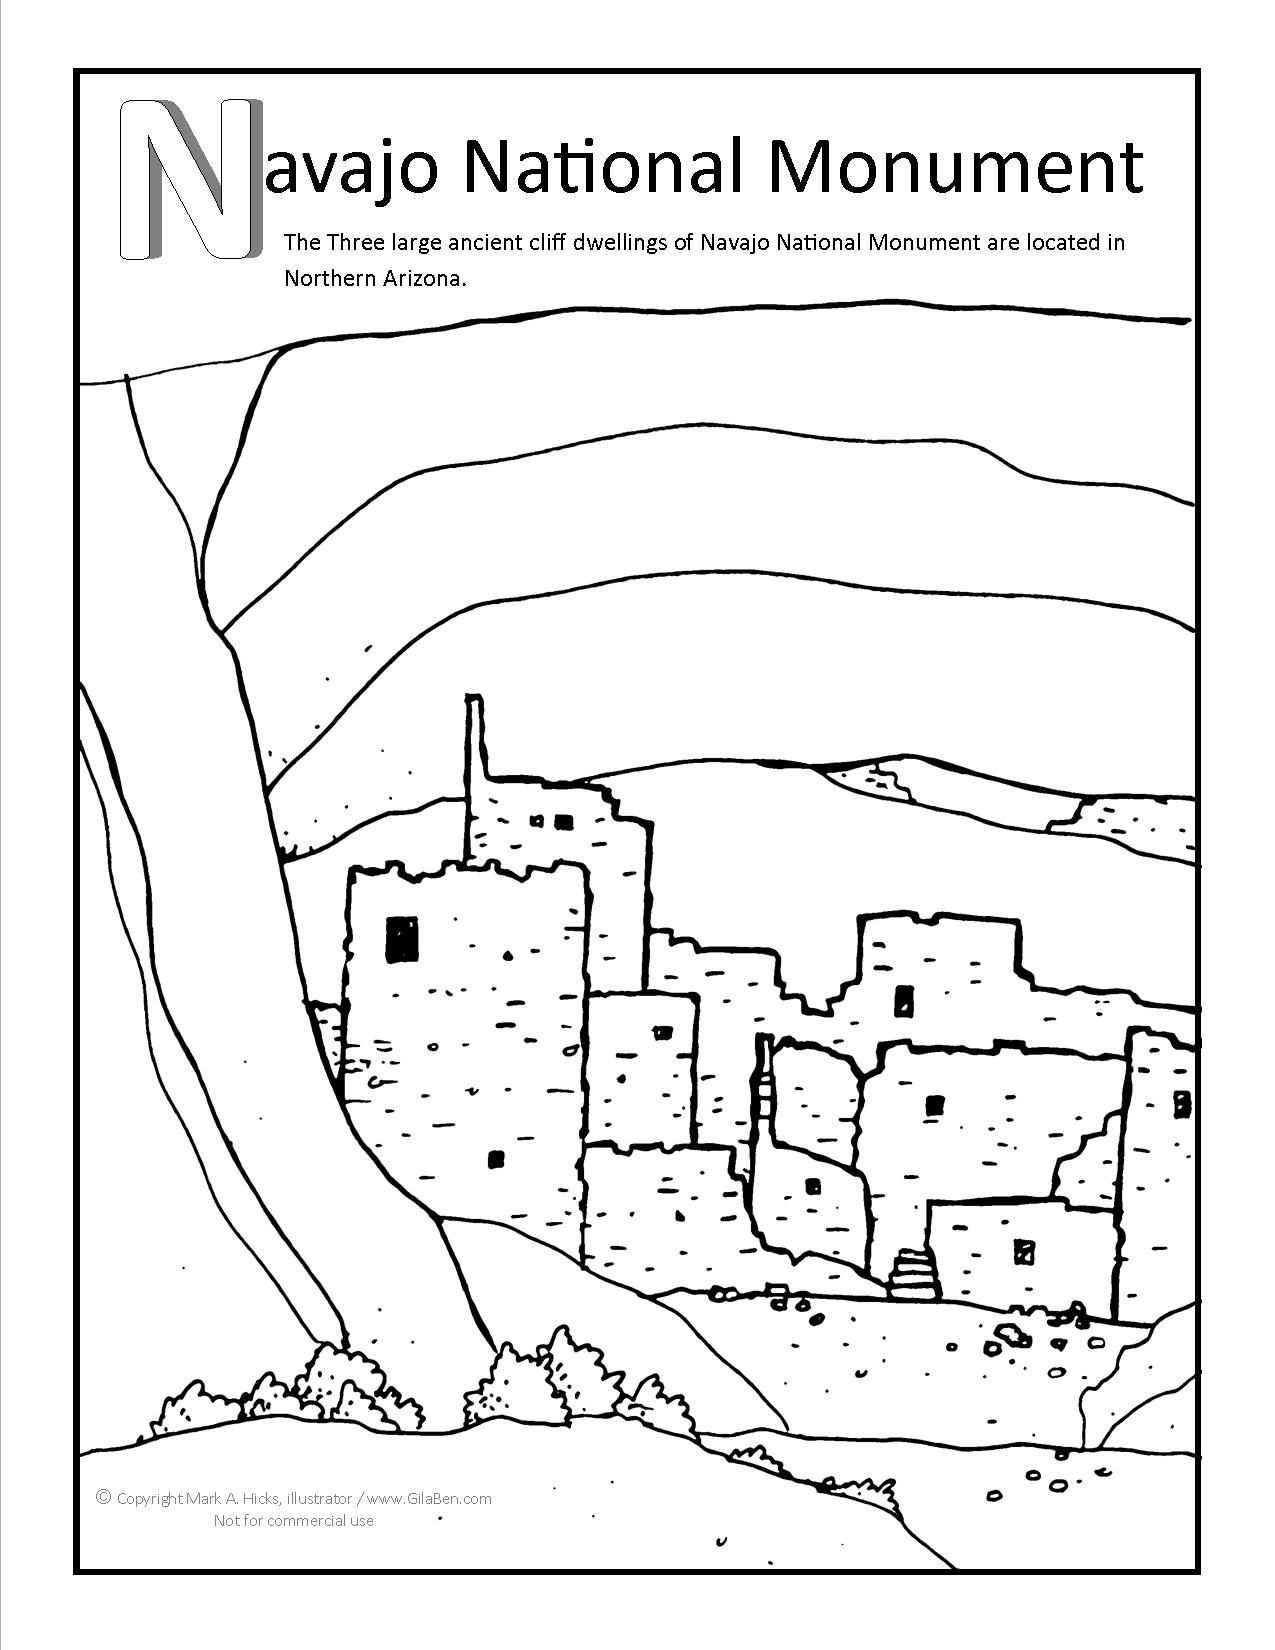 Navajo National Monument Coloring Page Coloring Pages Navajo National Monument National Monuments